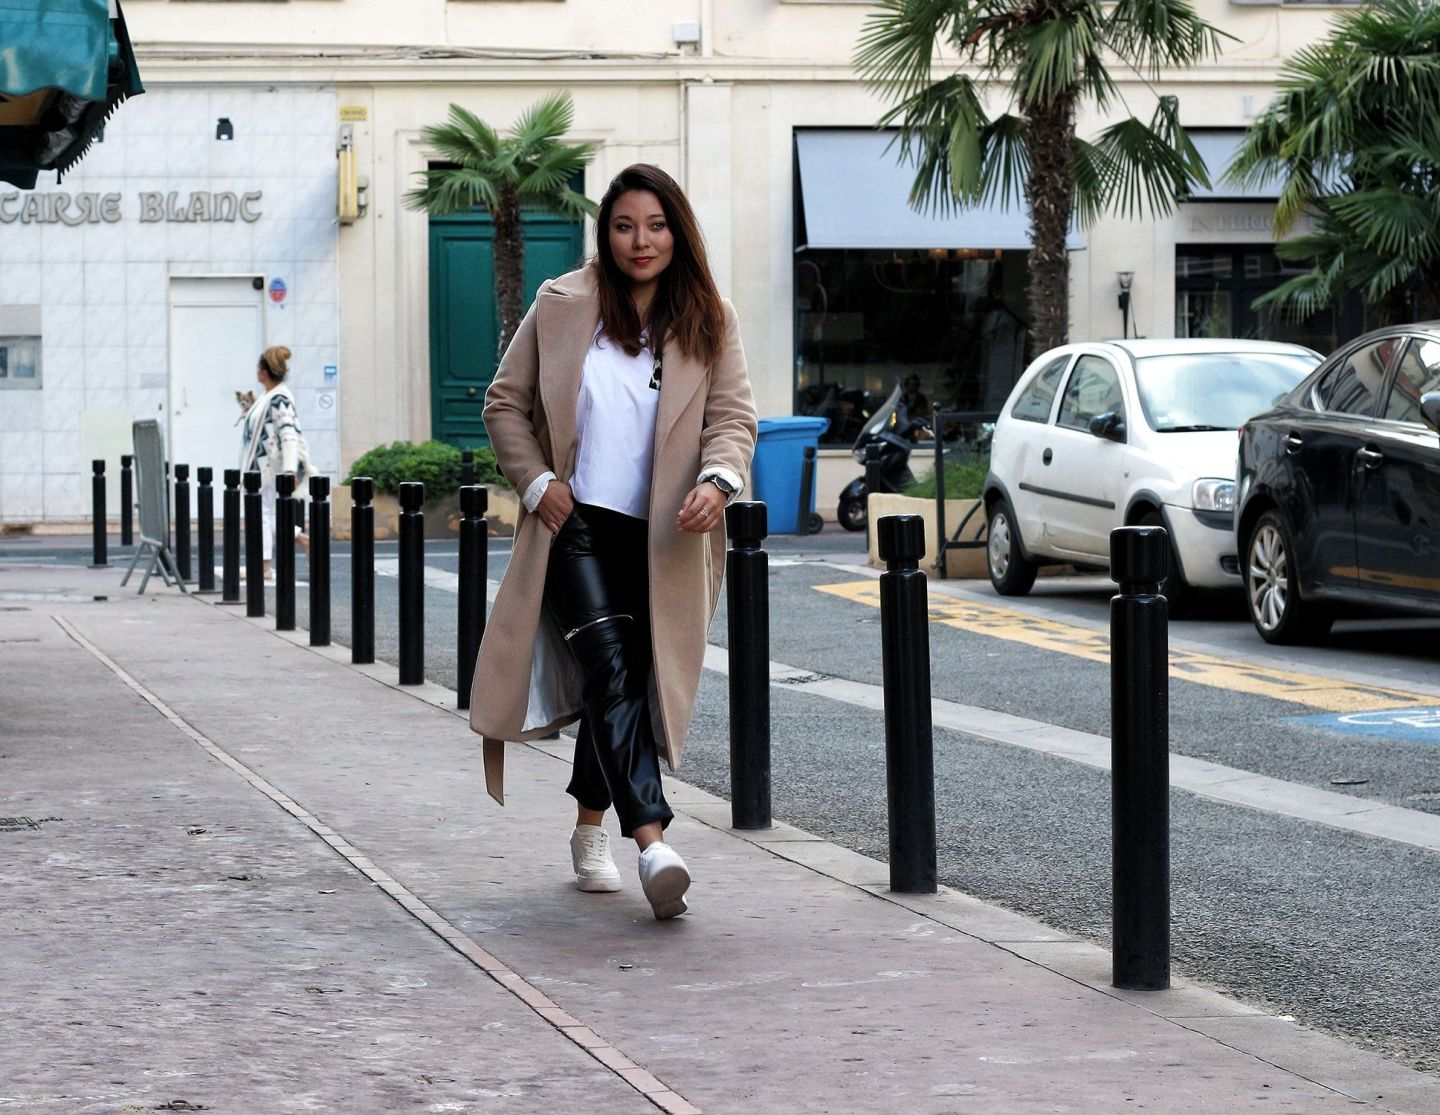 manteau camel, camel, sac inspi chanel, manteau h&m, zara, sheinside, pantalon simili cuir, pantalon simili zara, the green ananas, blogueuse mode, fashion blogger, chemise leopard, leopard, camel